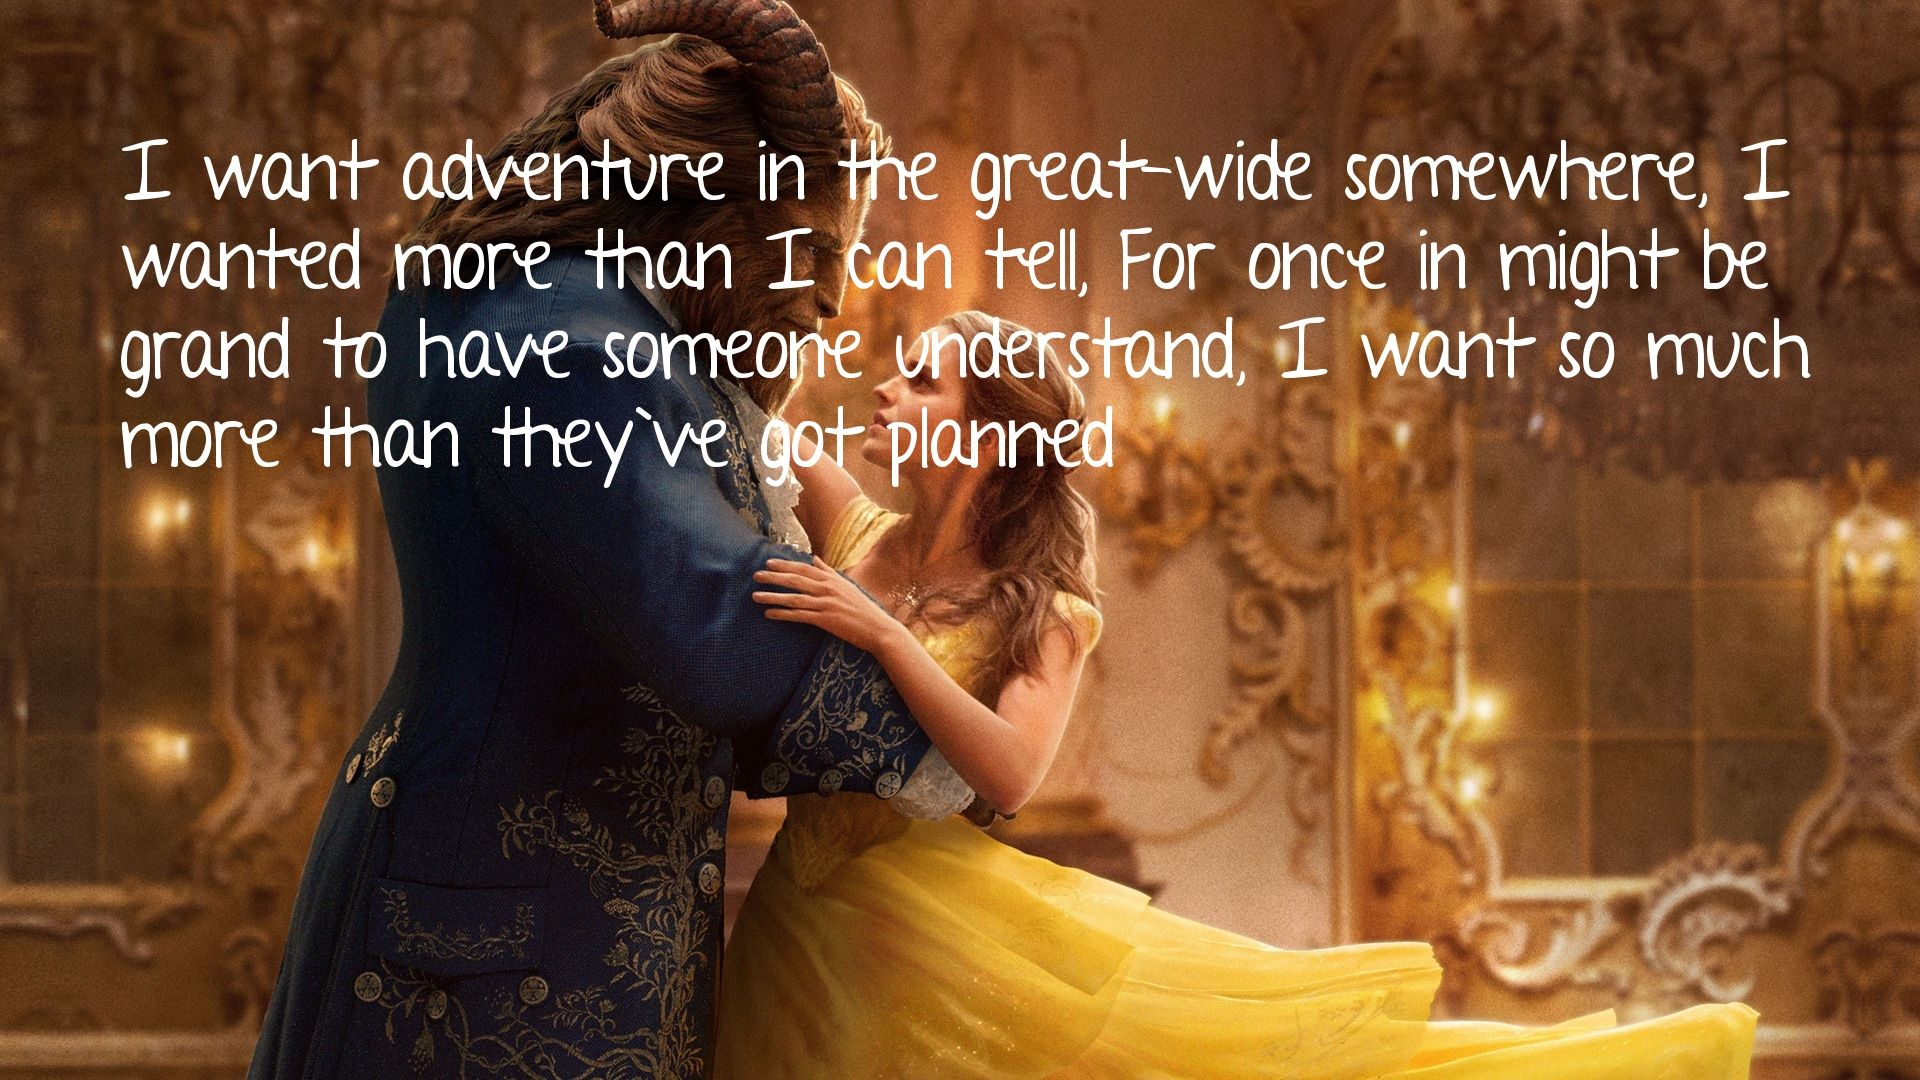 Beauty And The Beast 2017 Quote Love Myself Pinterest